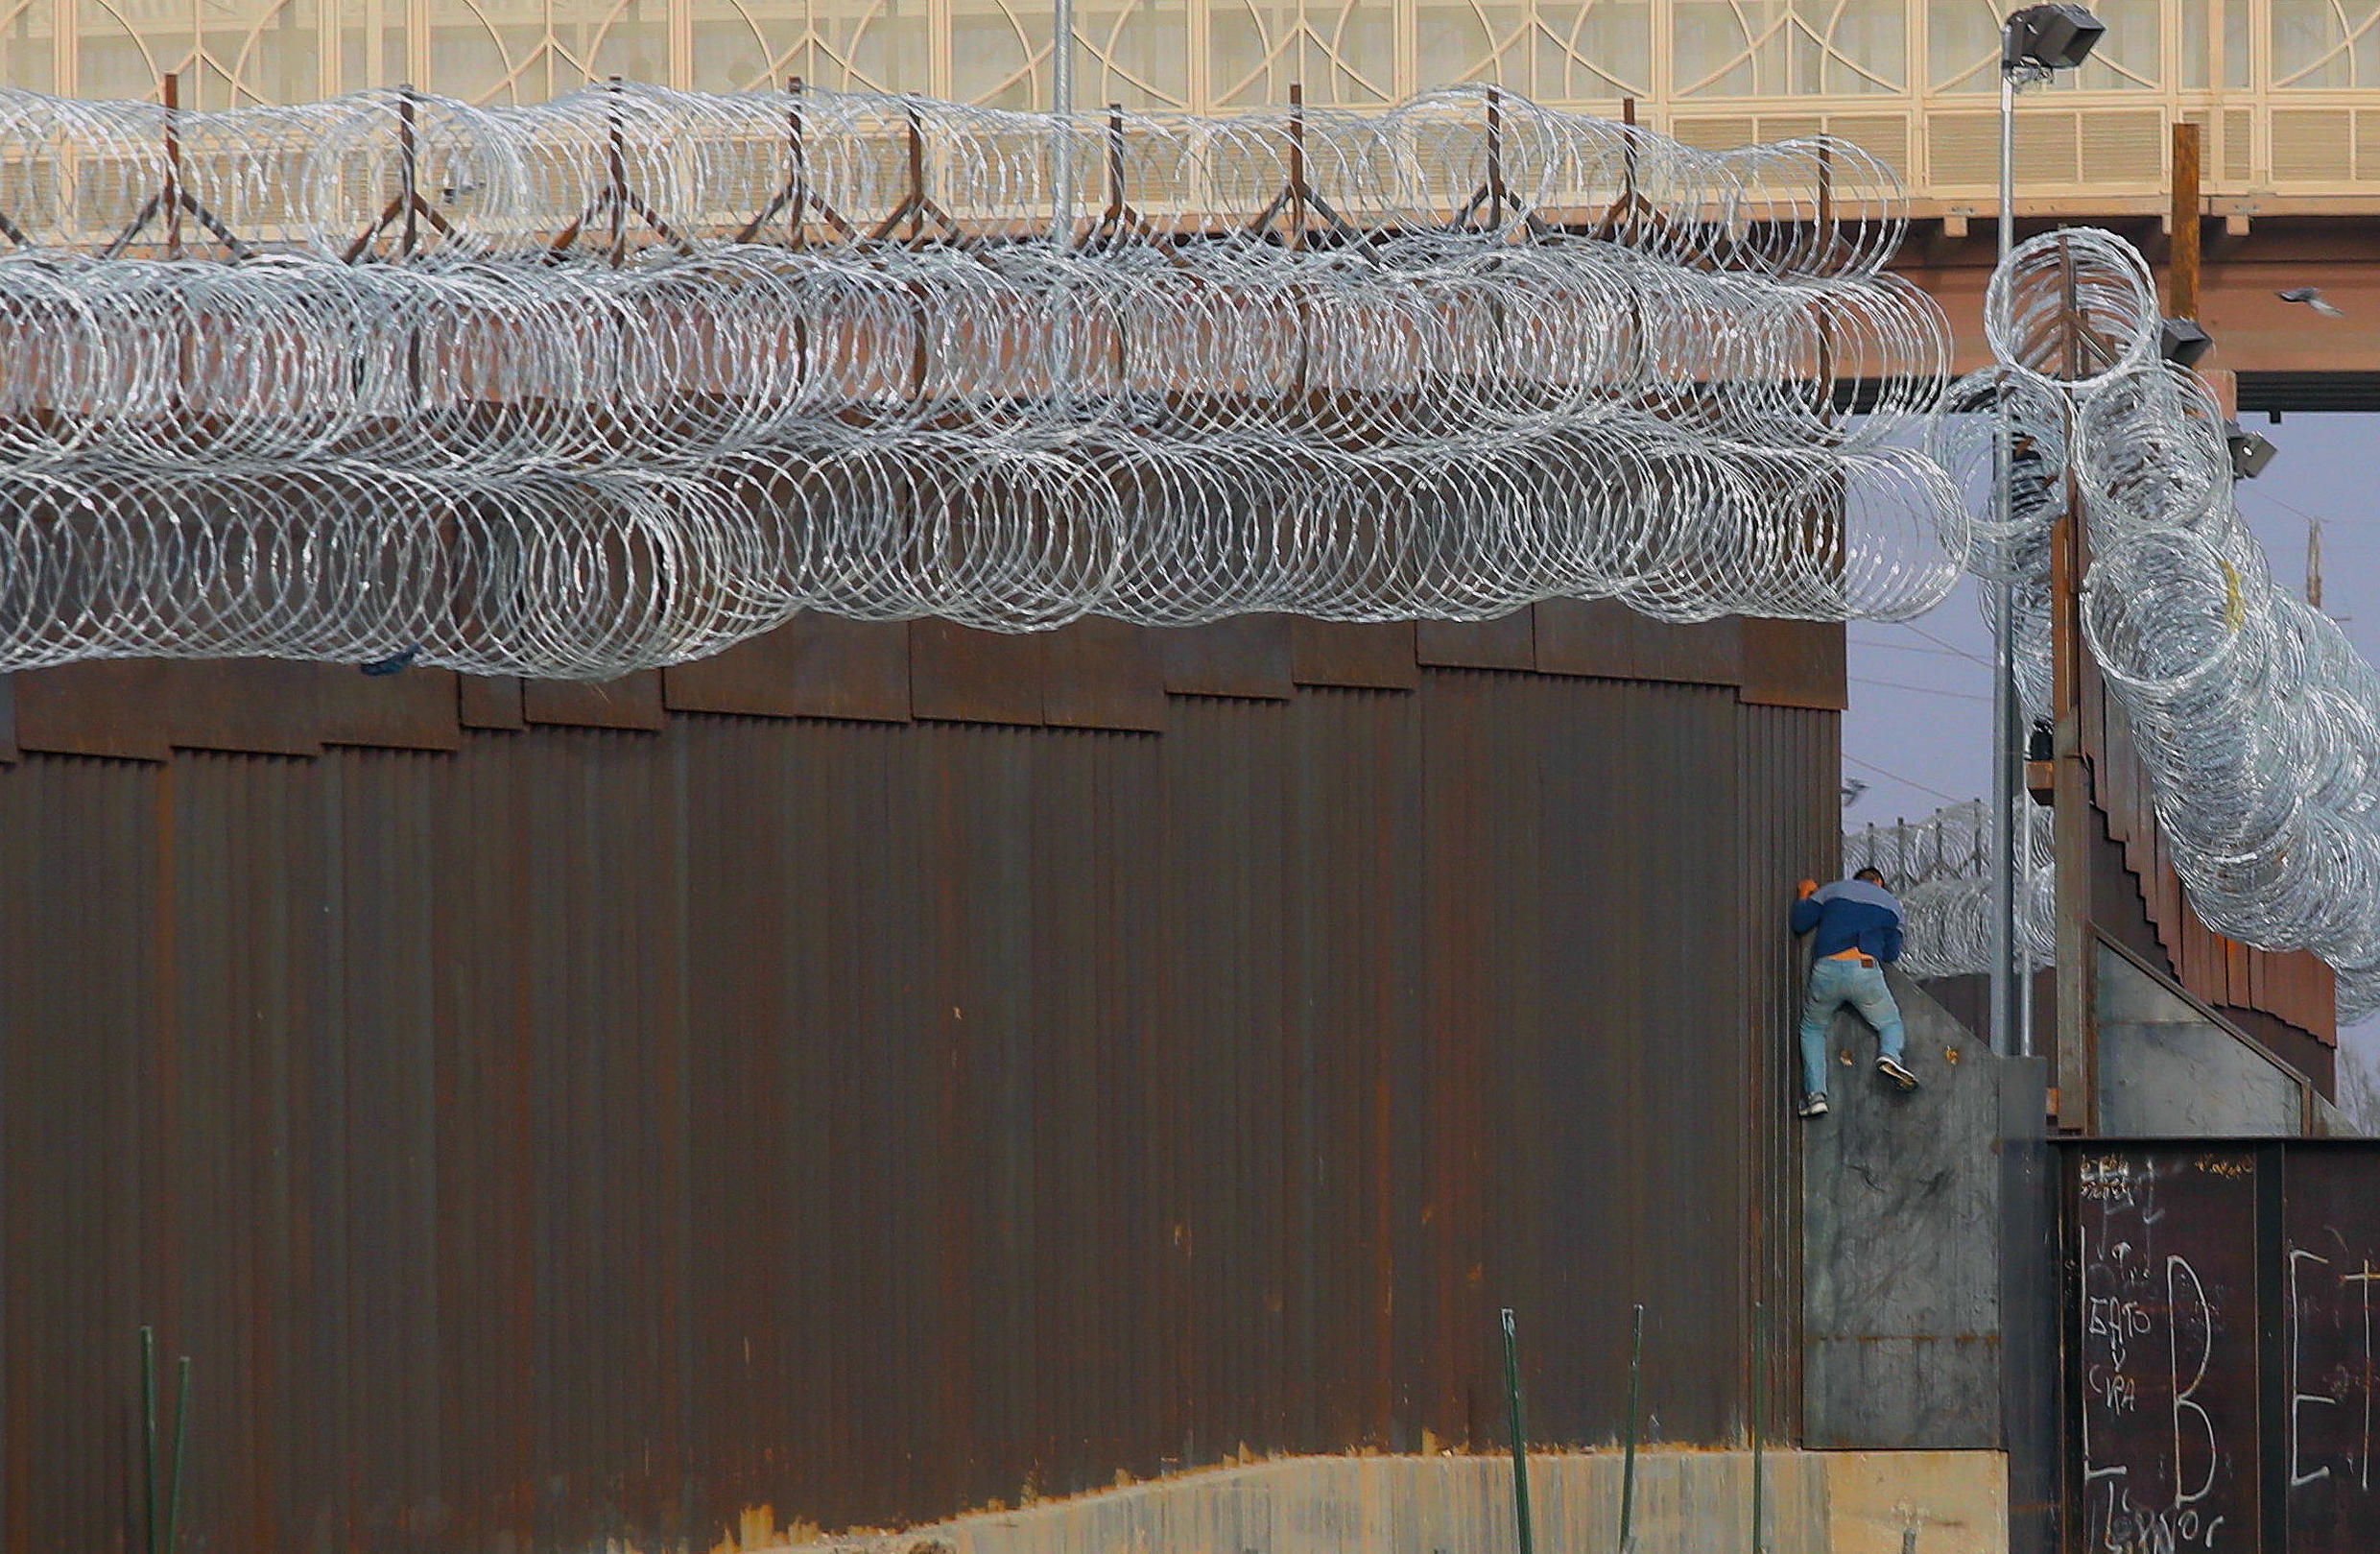 A migrant climbs the border fence in an attempt to enter the United States from the Mexican city of Ciudad Juarez